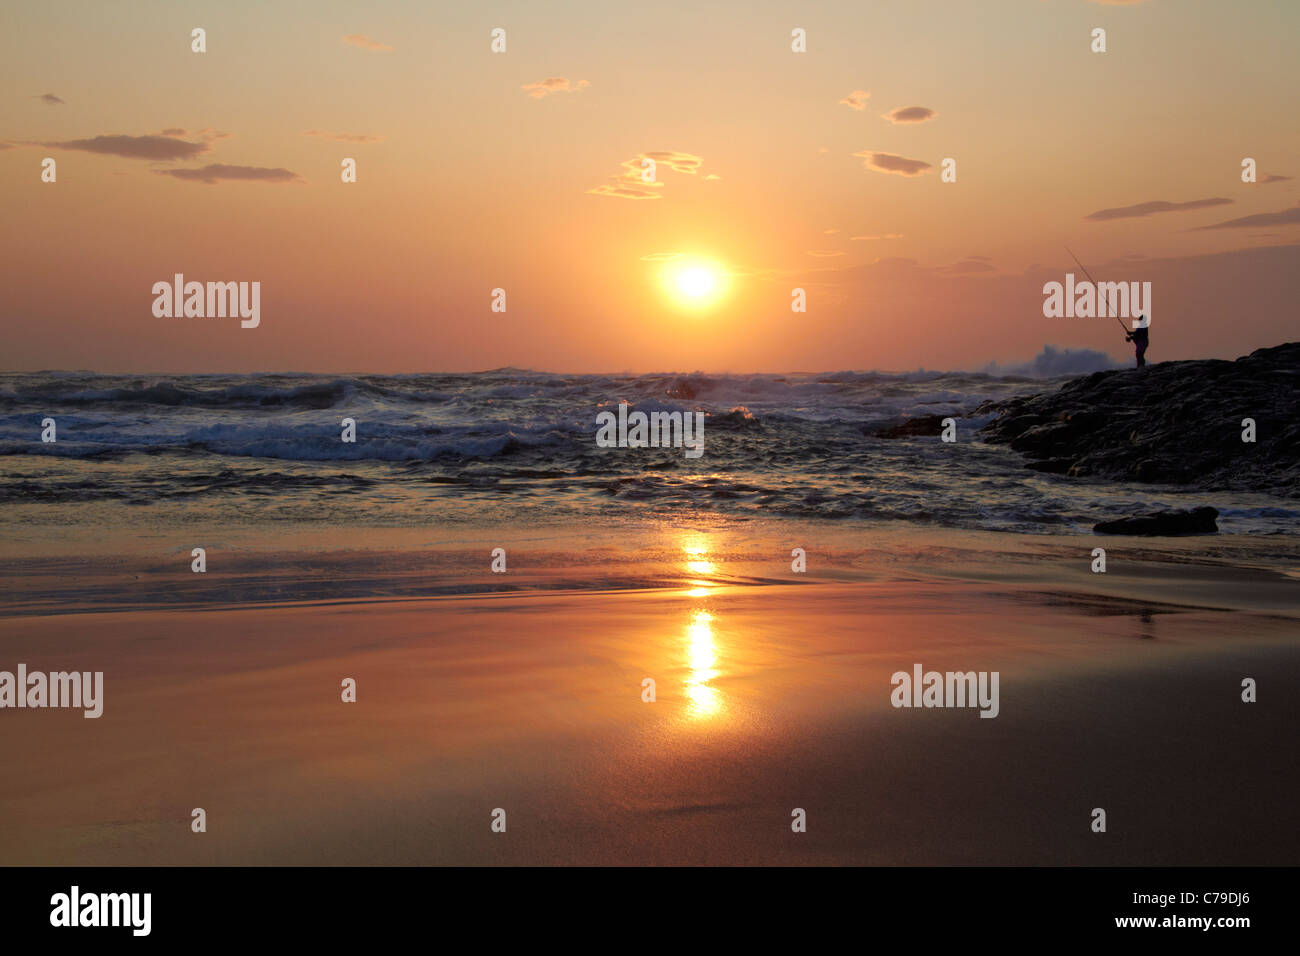 Sunrise over the Indian Ocean with man fishing from the rocks. Amanzimtoti, KwaZulu-Natal, South Africa. - Stock Image